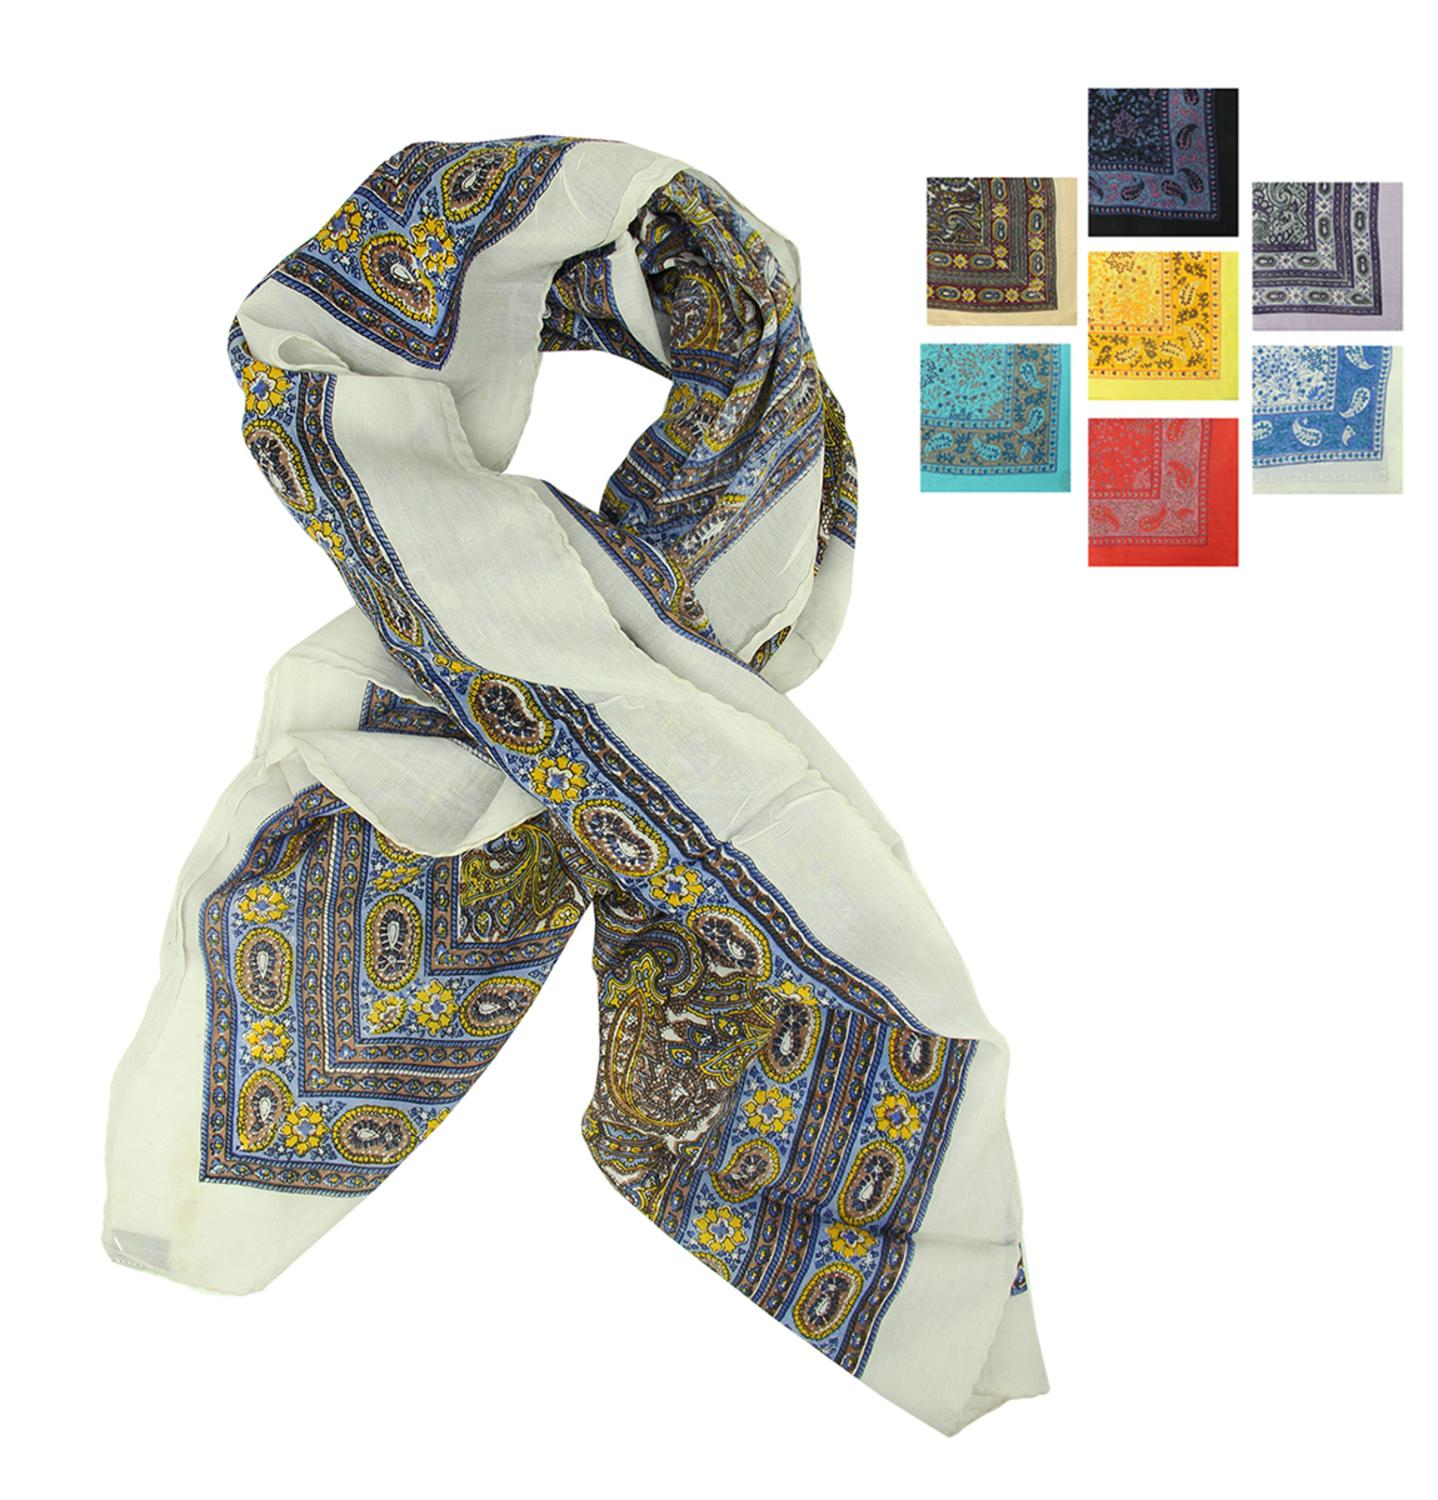 ''Pack of 6 Women's Contemporary Colorful Stylish Large Fashion Scarf Shawls 41'''' x 41''''''